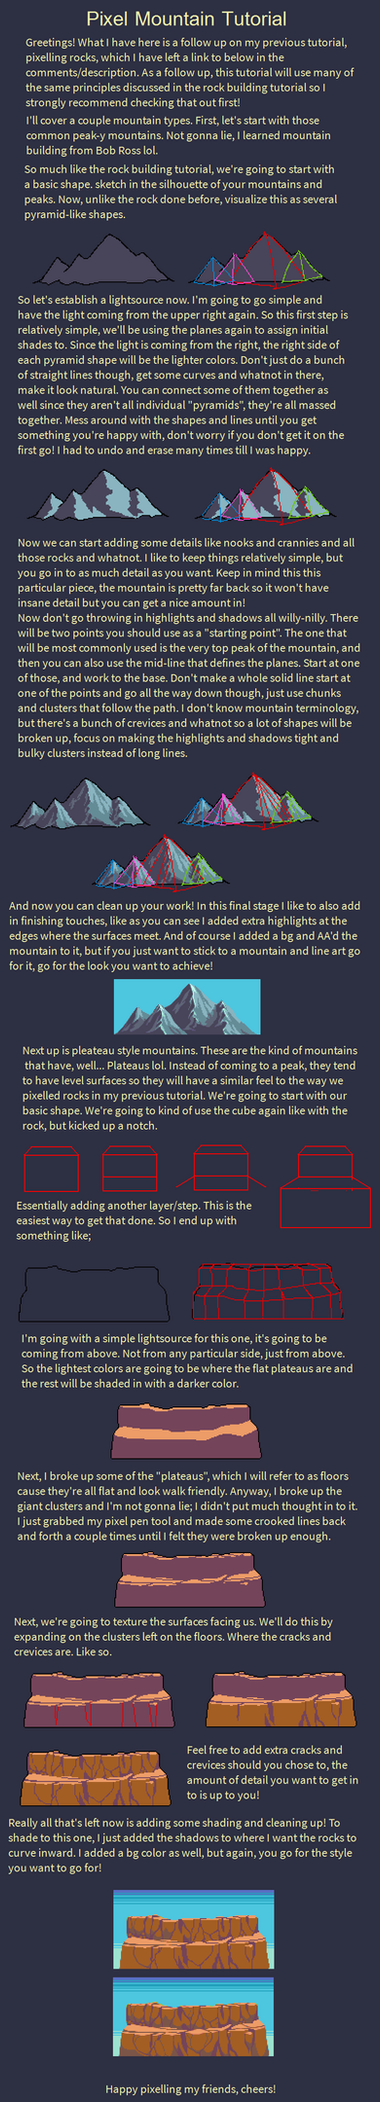 Mountain Tutorial by RHLPixels